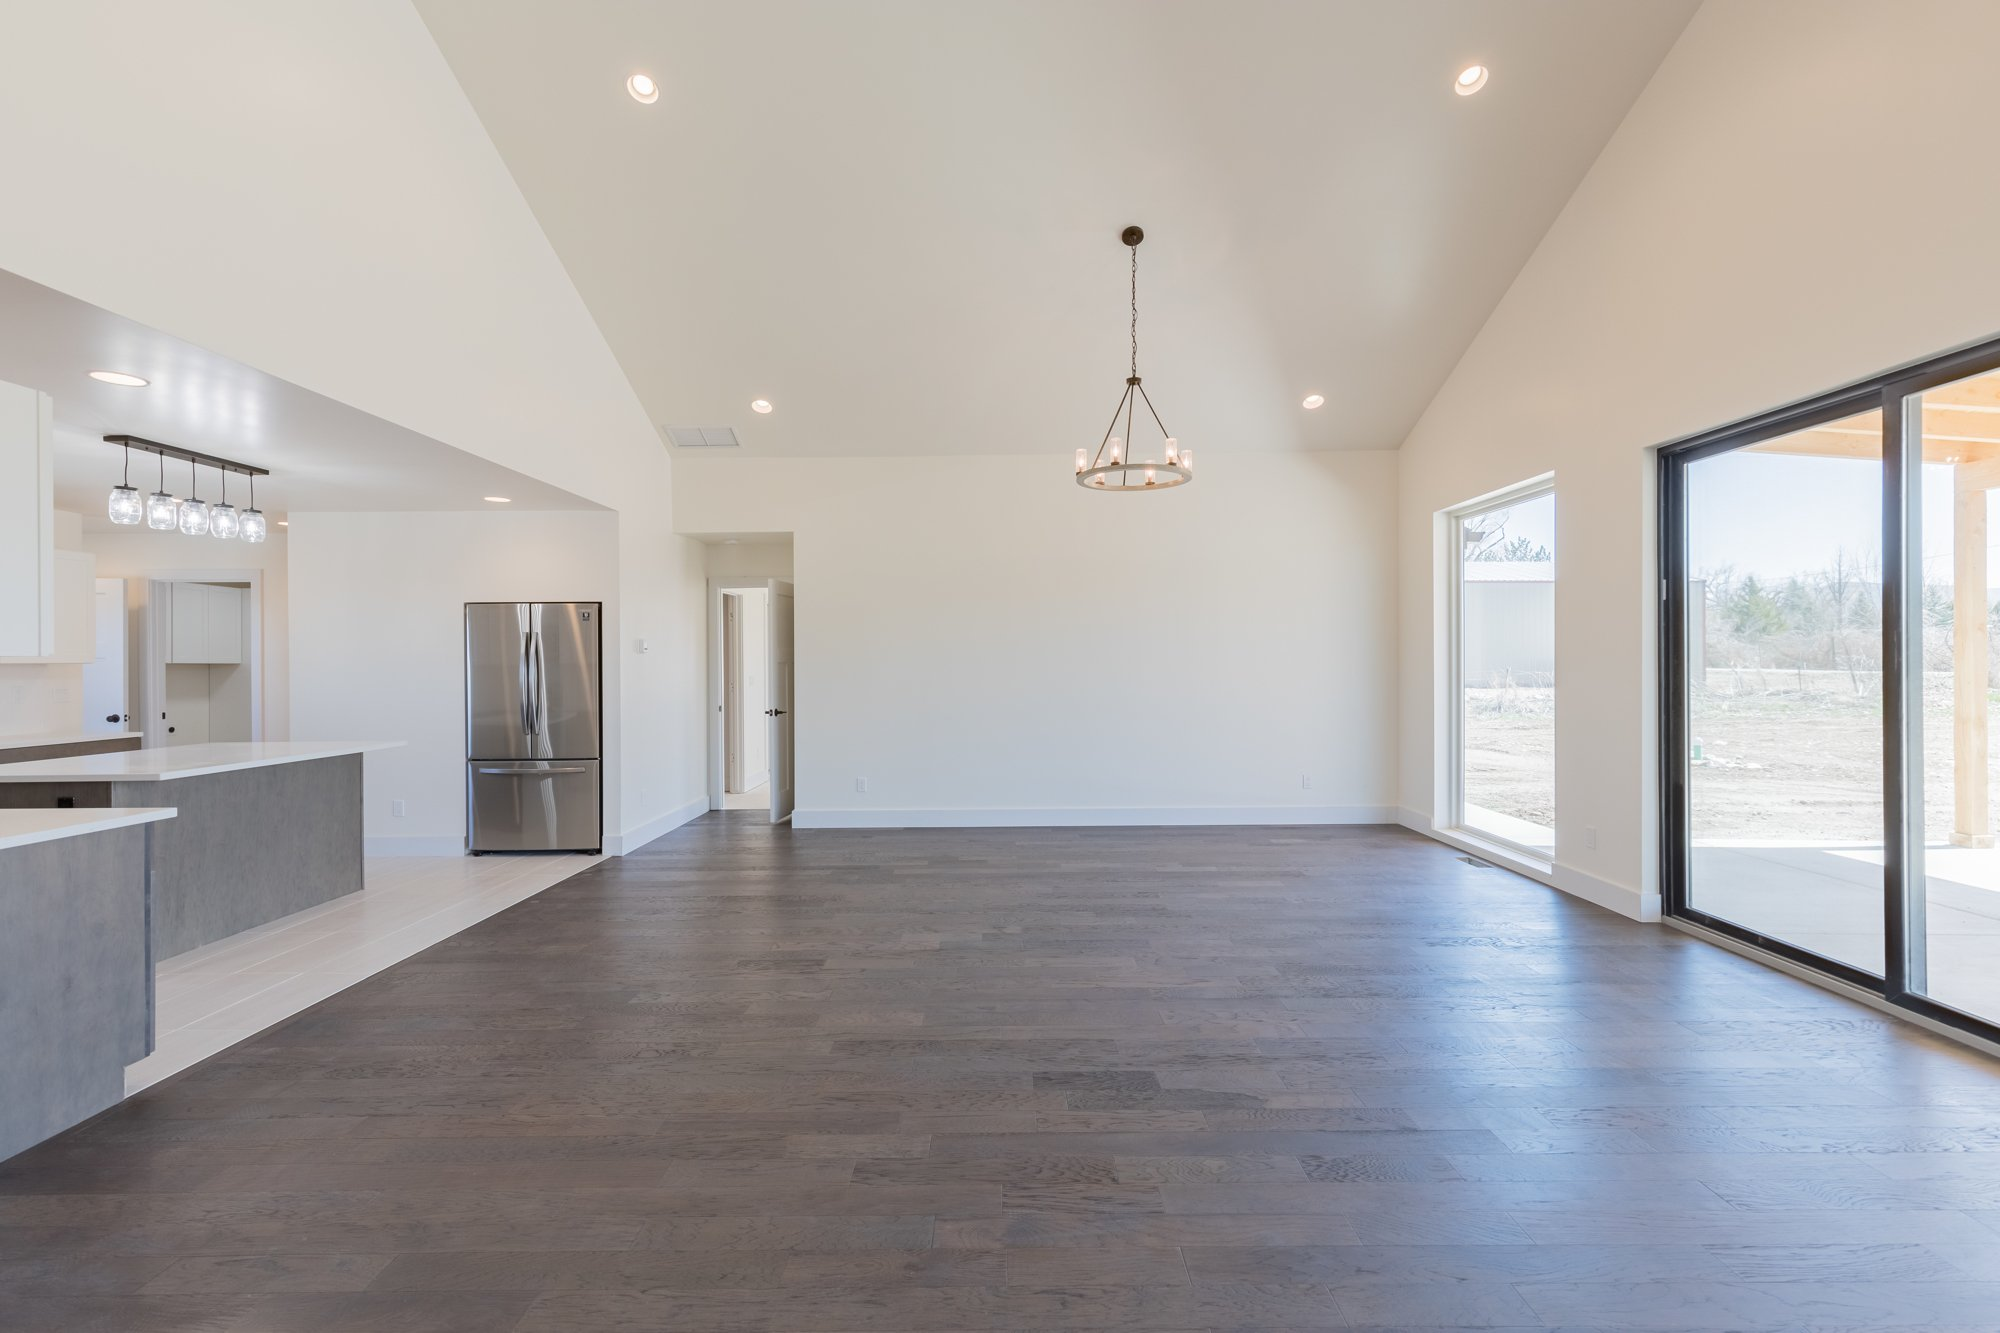 Open Concept Living Room - TBD Highway 550 Montrose, CO 81403 - Atha Team New Construction Real Estate